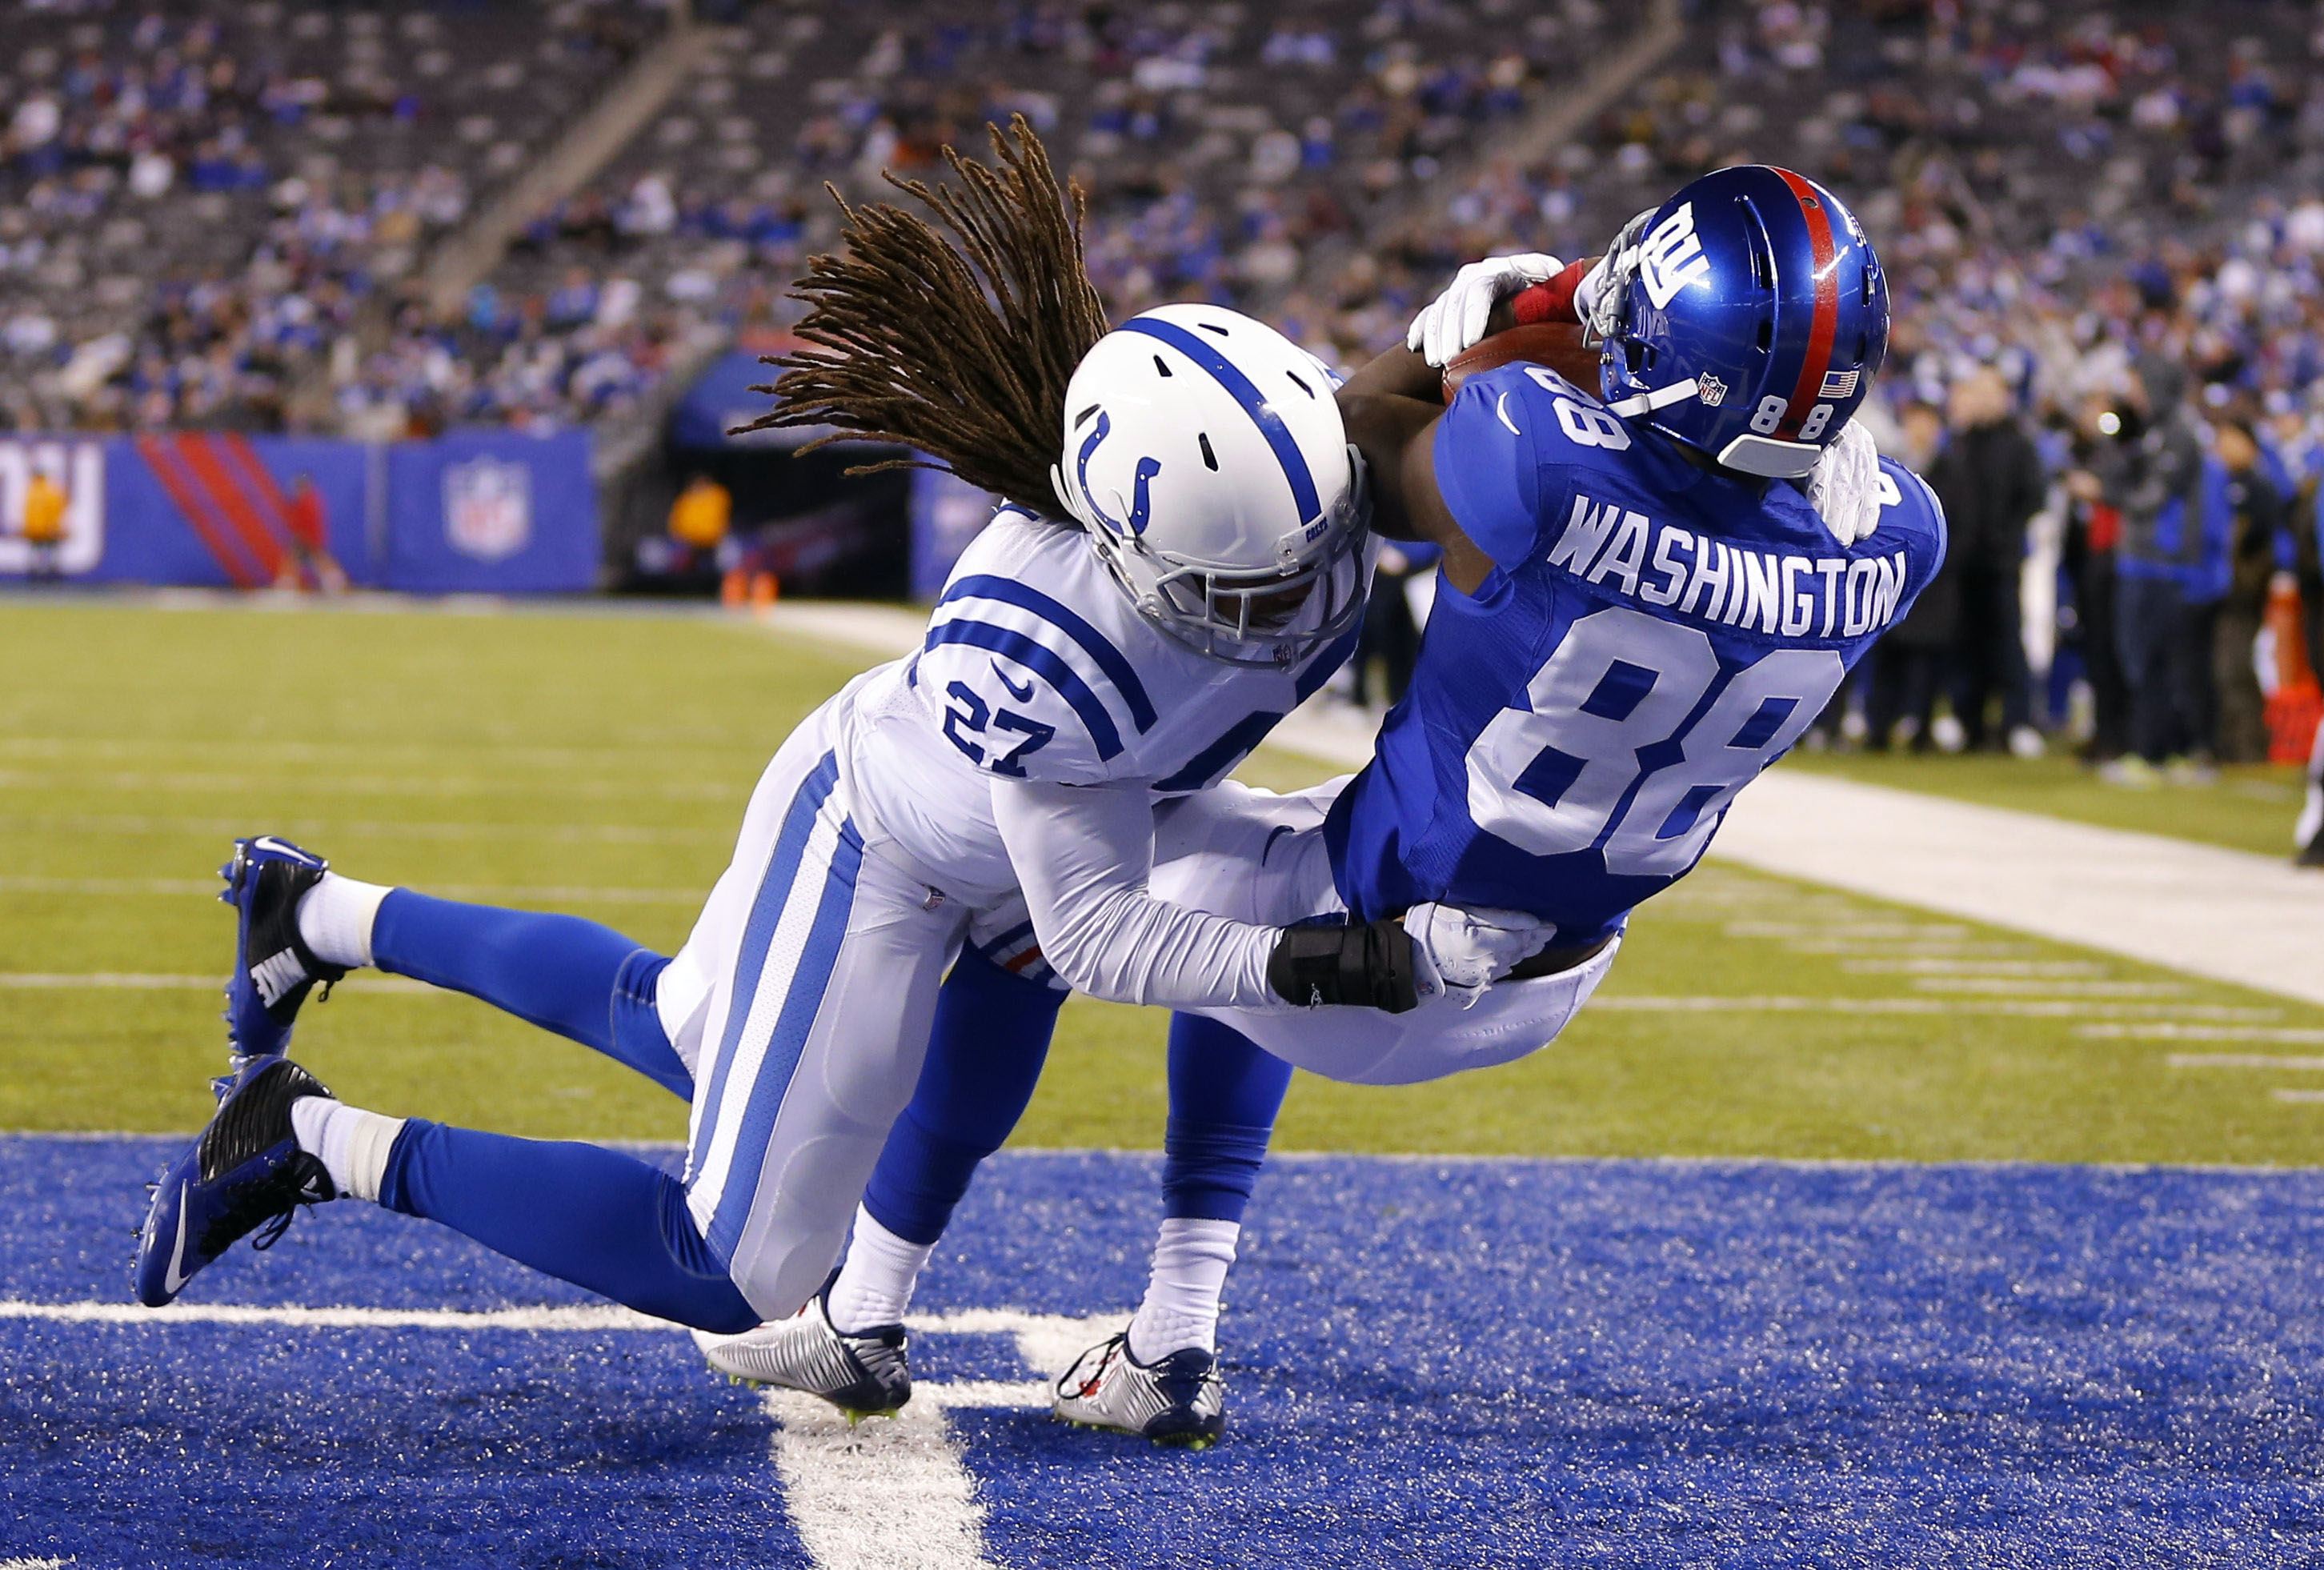 Corey Washington catches a touchdown pass against the Indianapolis Colts